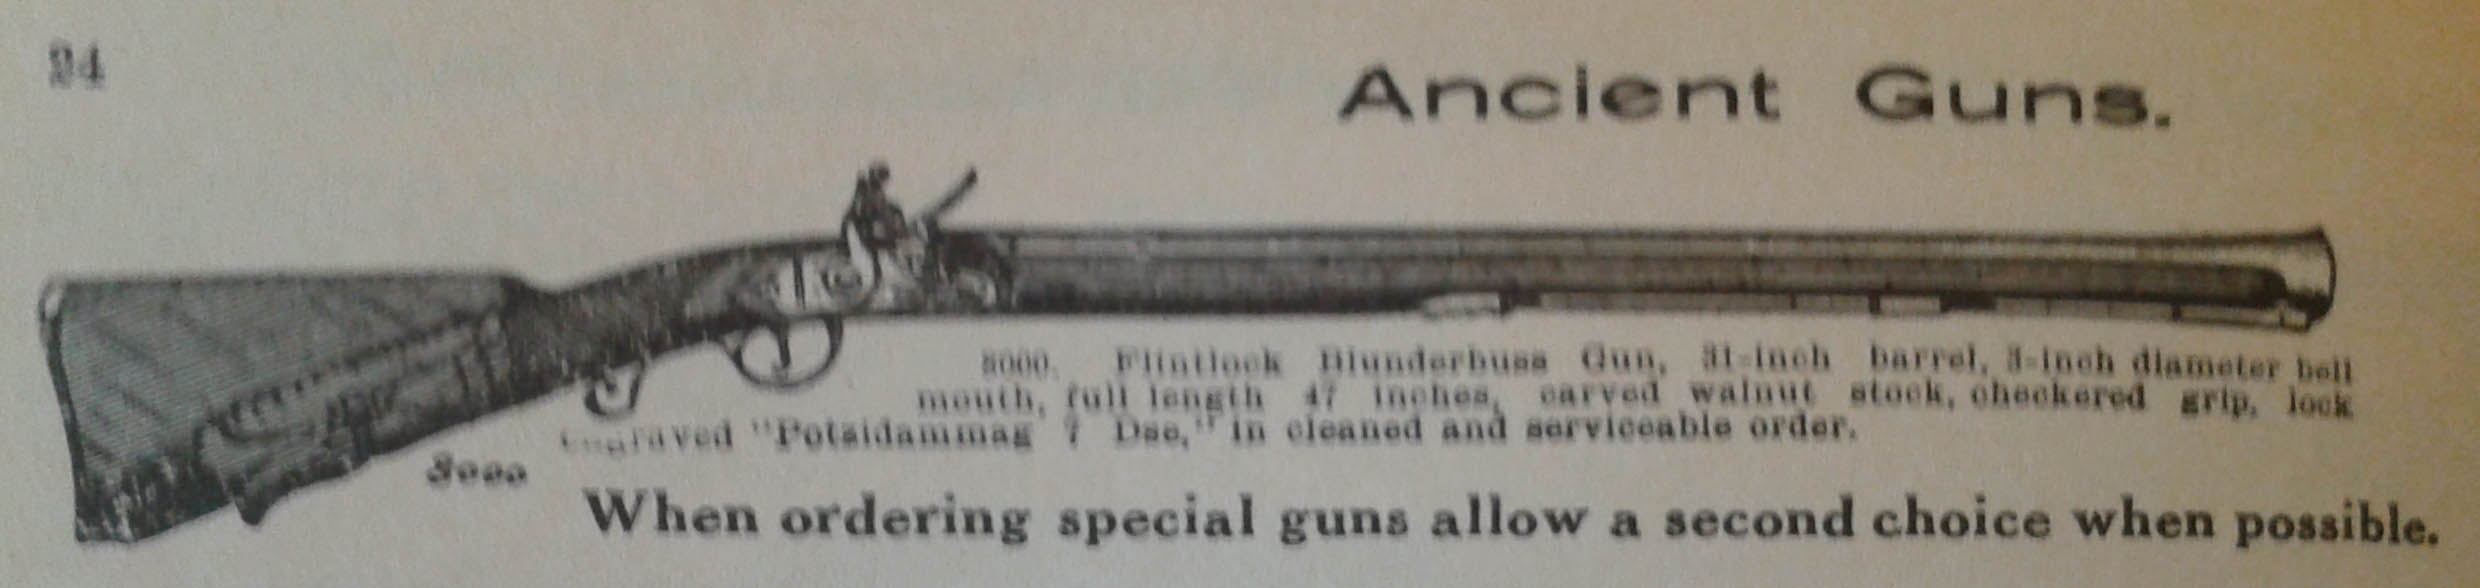 bannerman_catalog_ancient_guns